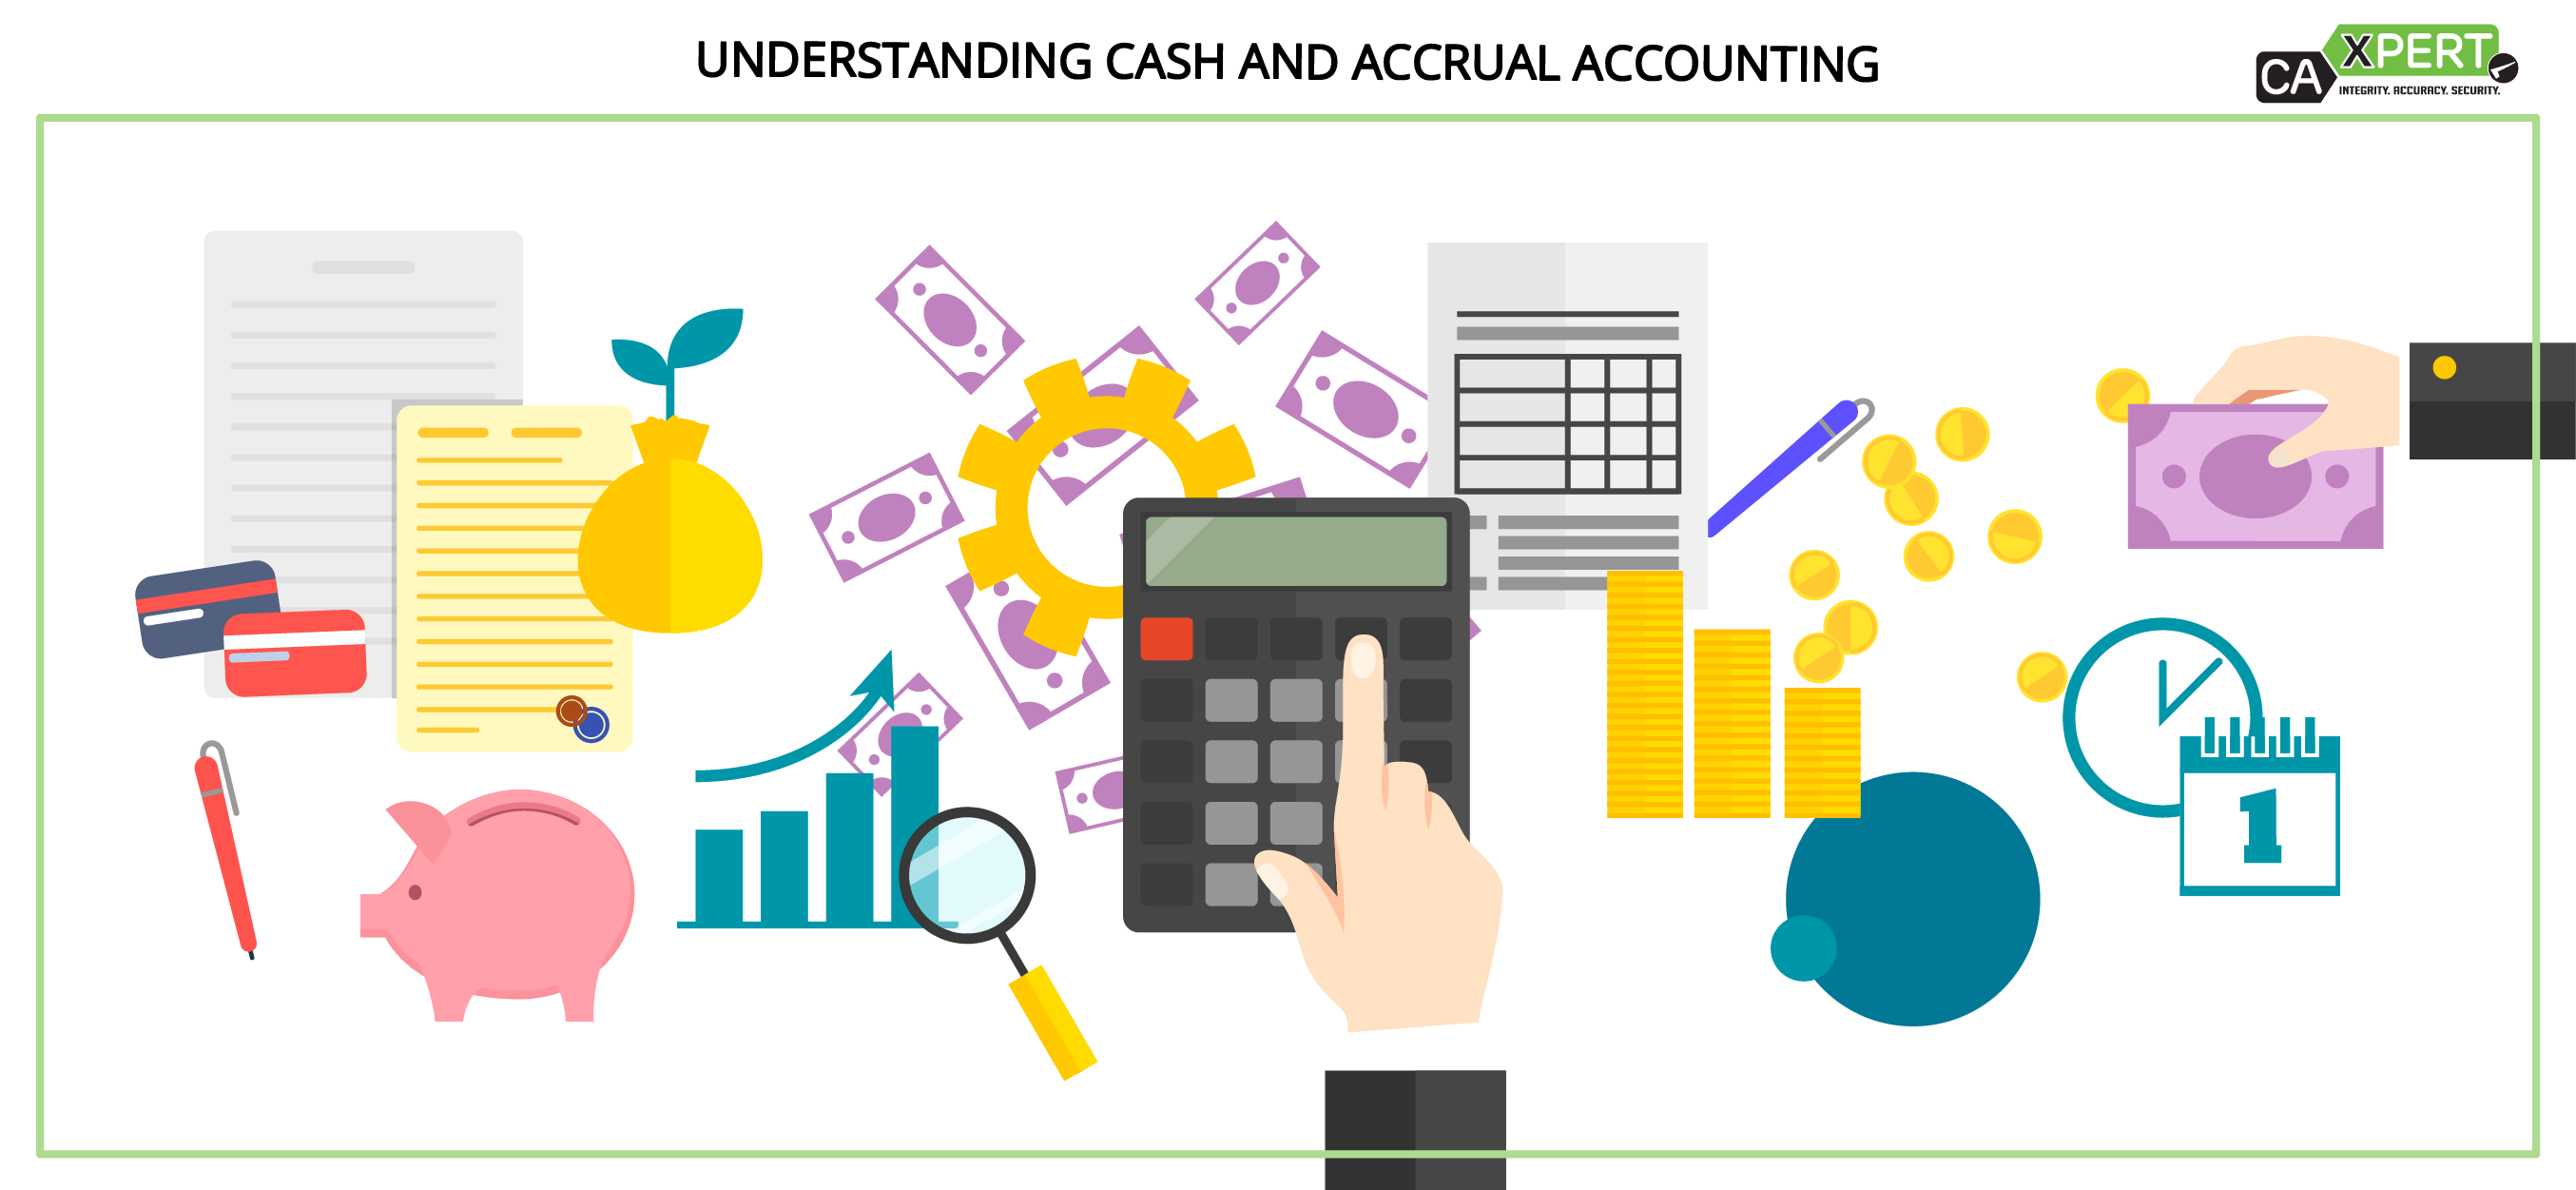 Understanding Cash and Accrual Accounting